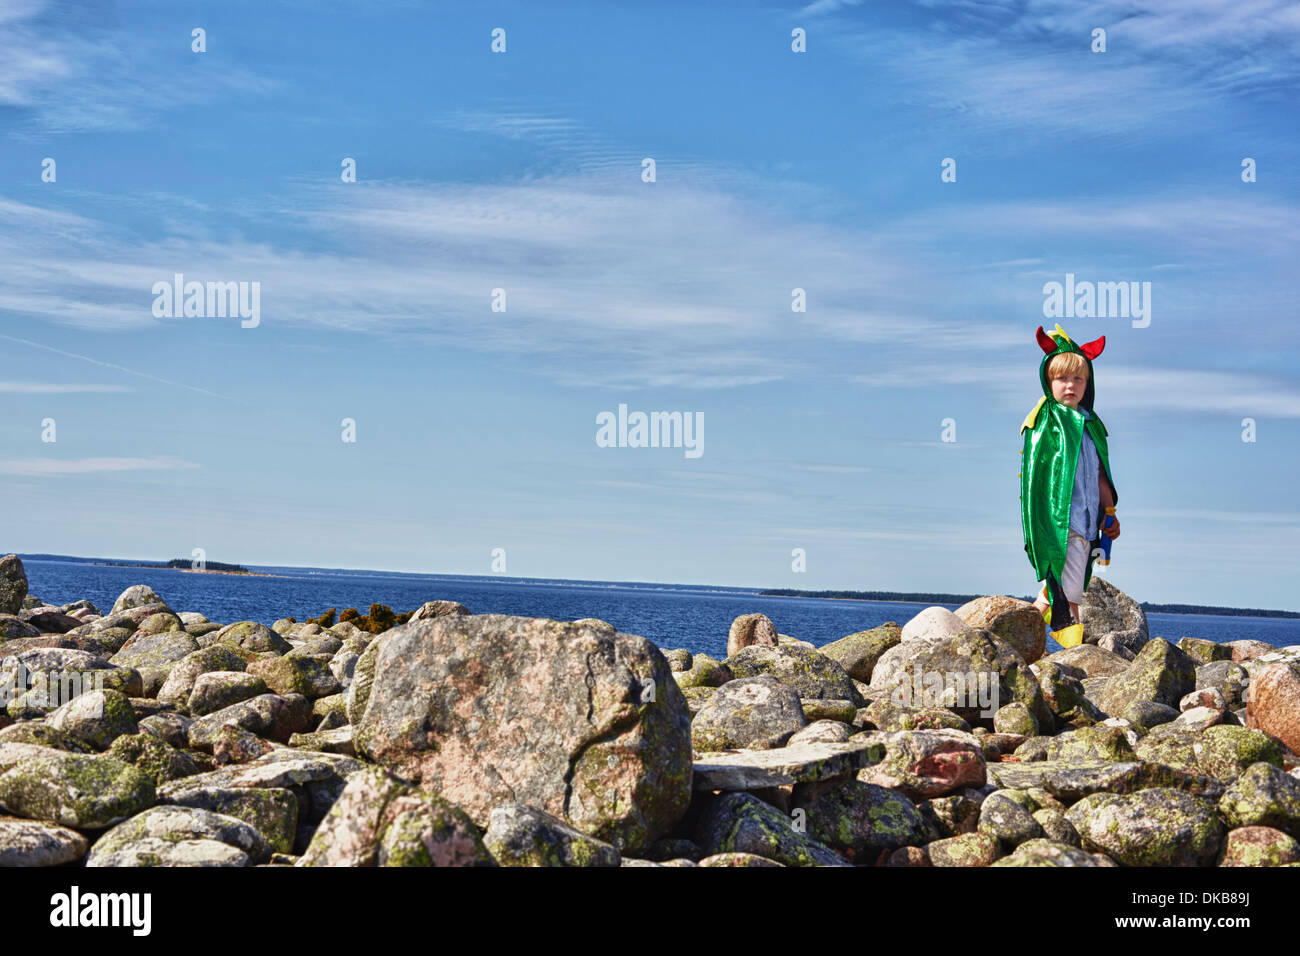 Boy wearing green cape standing on stone wall, Eggergrund, Sweden - Stock Image